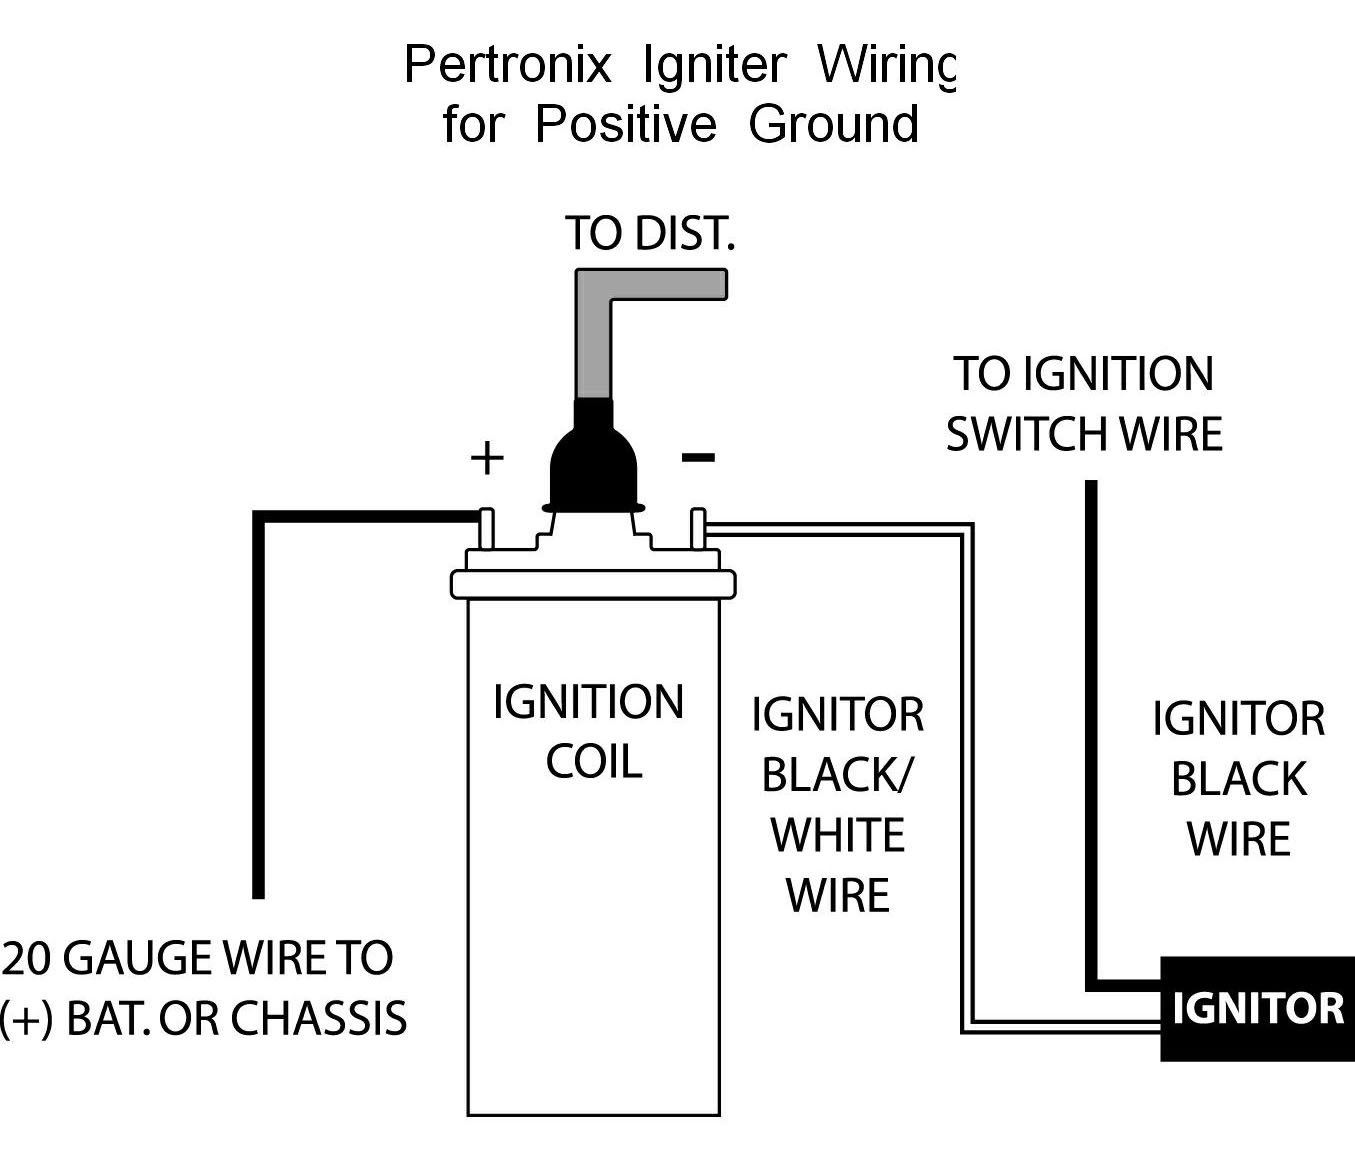 PerPosGndWiring pertronix positive ground wiring compu fire ignition wiring diagram at aneh.co